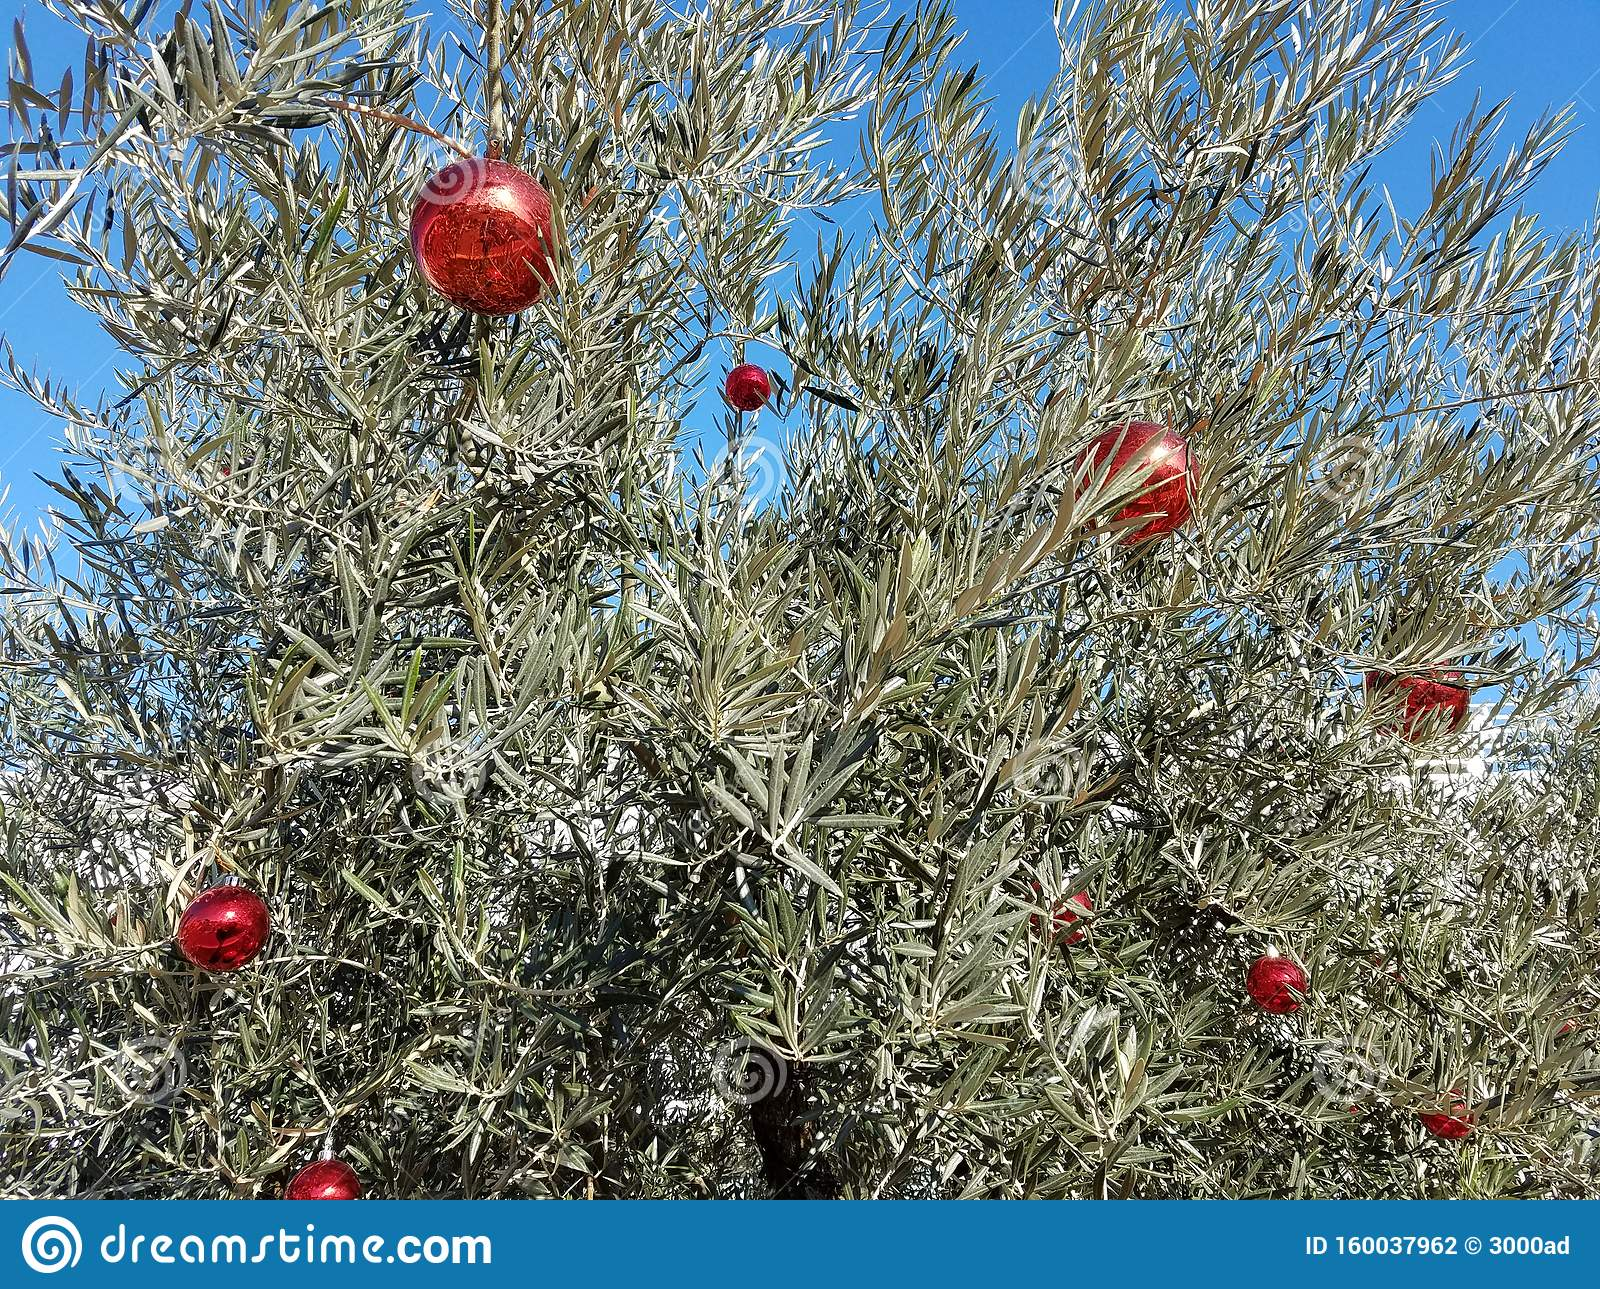 Olive Tree With Christmas Decorations Stock Photo Image Of Unusual Tropical 160037962